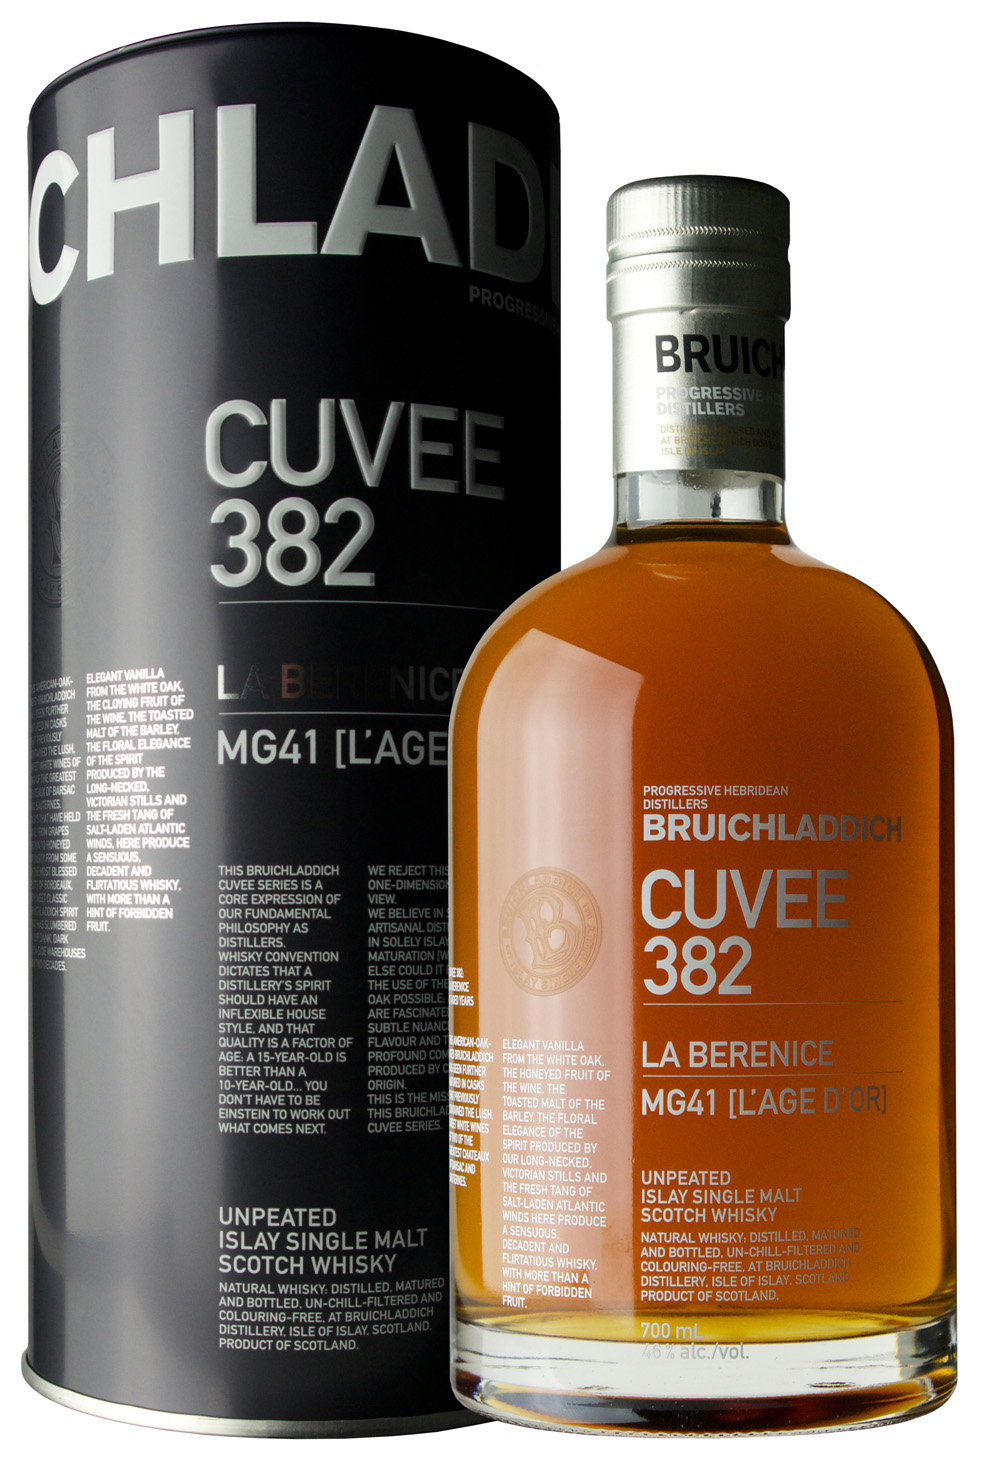 Billede: Bruichladdich Cuvee 382 La Berenice - tube and bottle.jpg